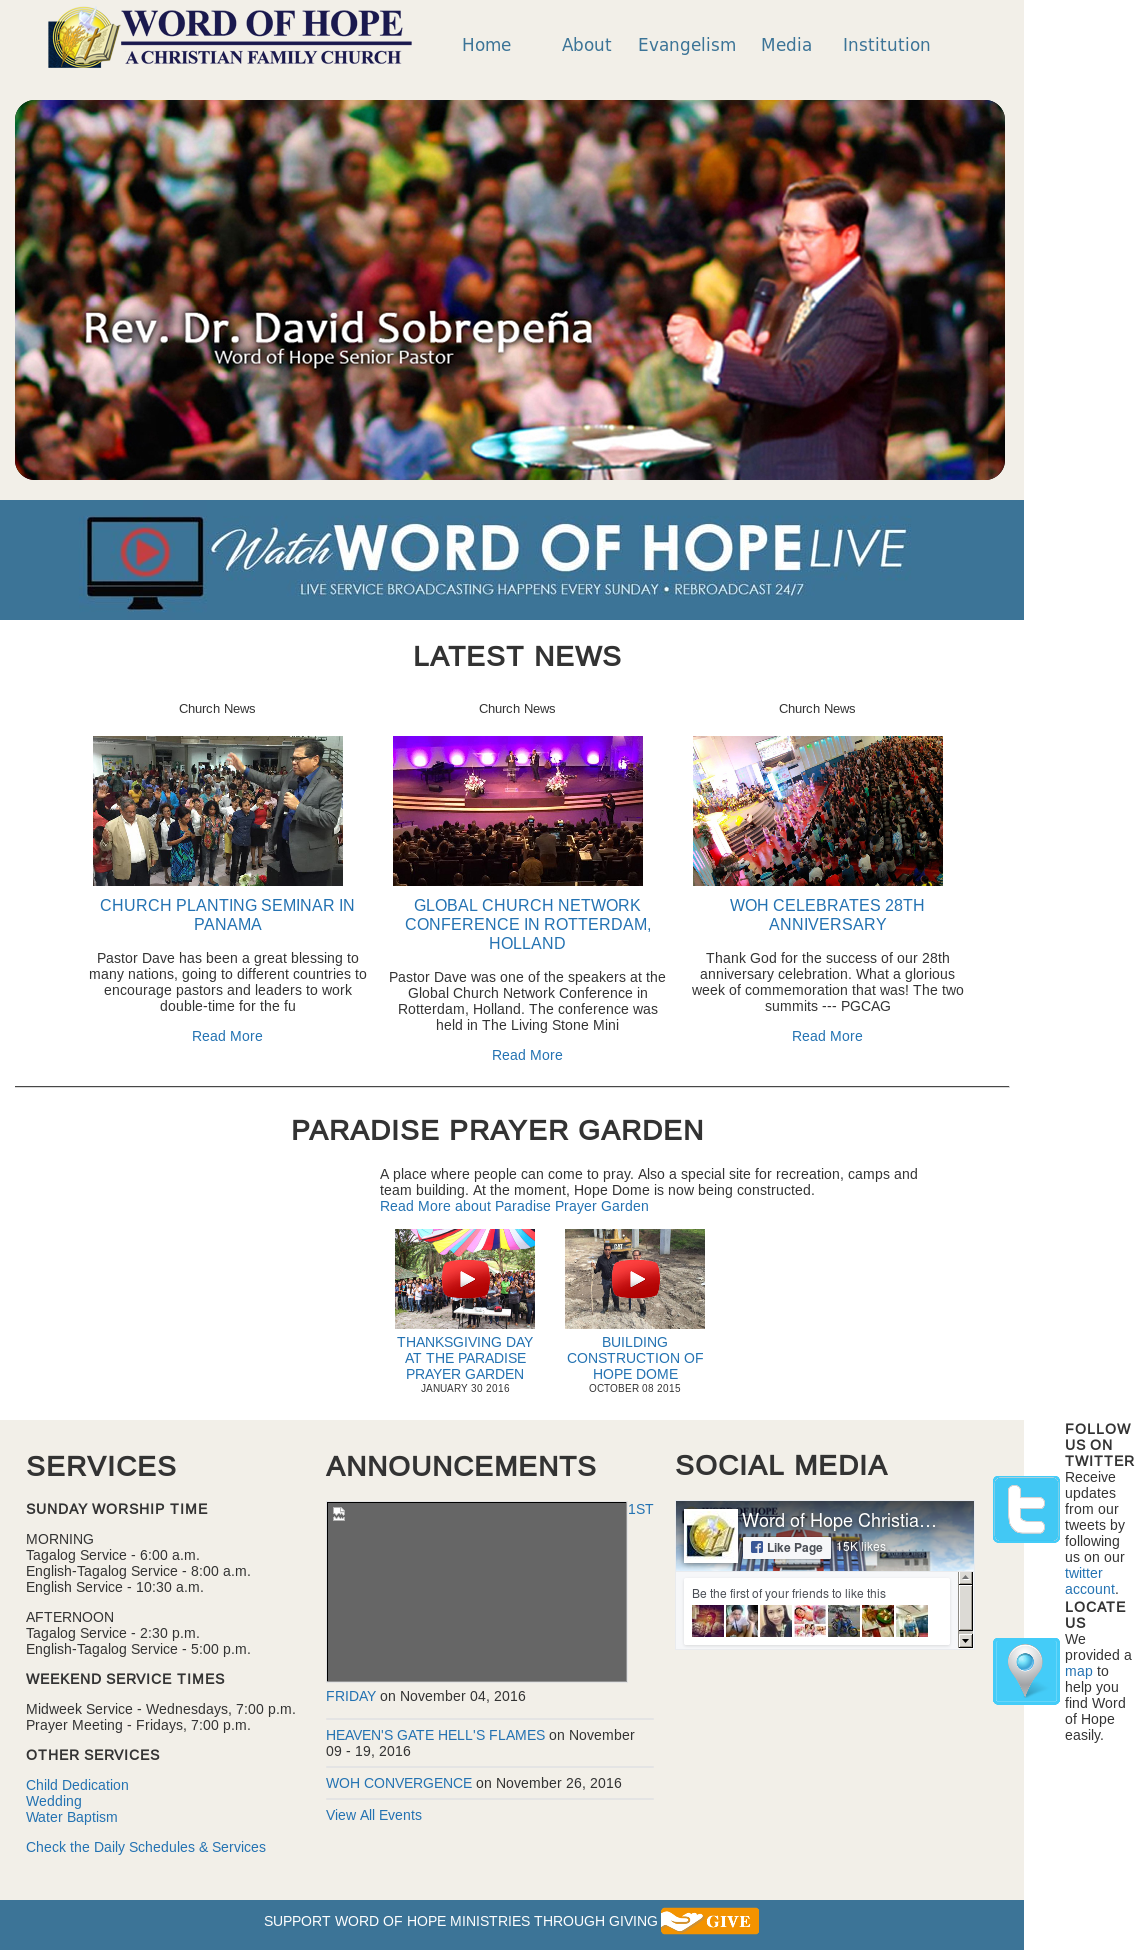 Word Of Hope Christian Family Church Competitors, Revenue and